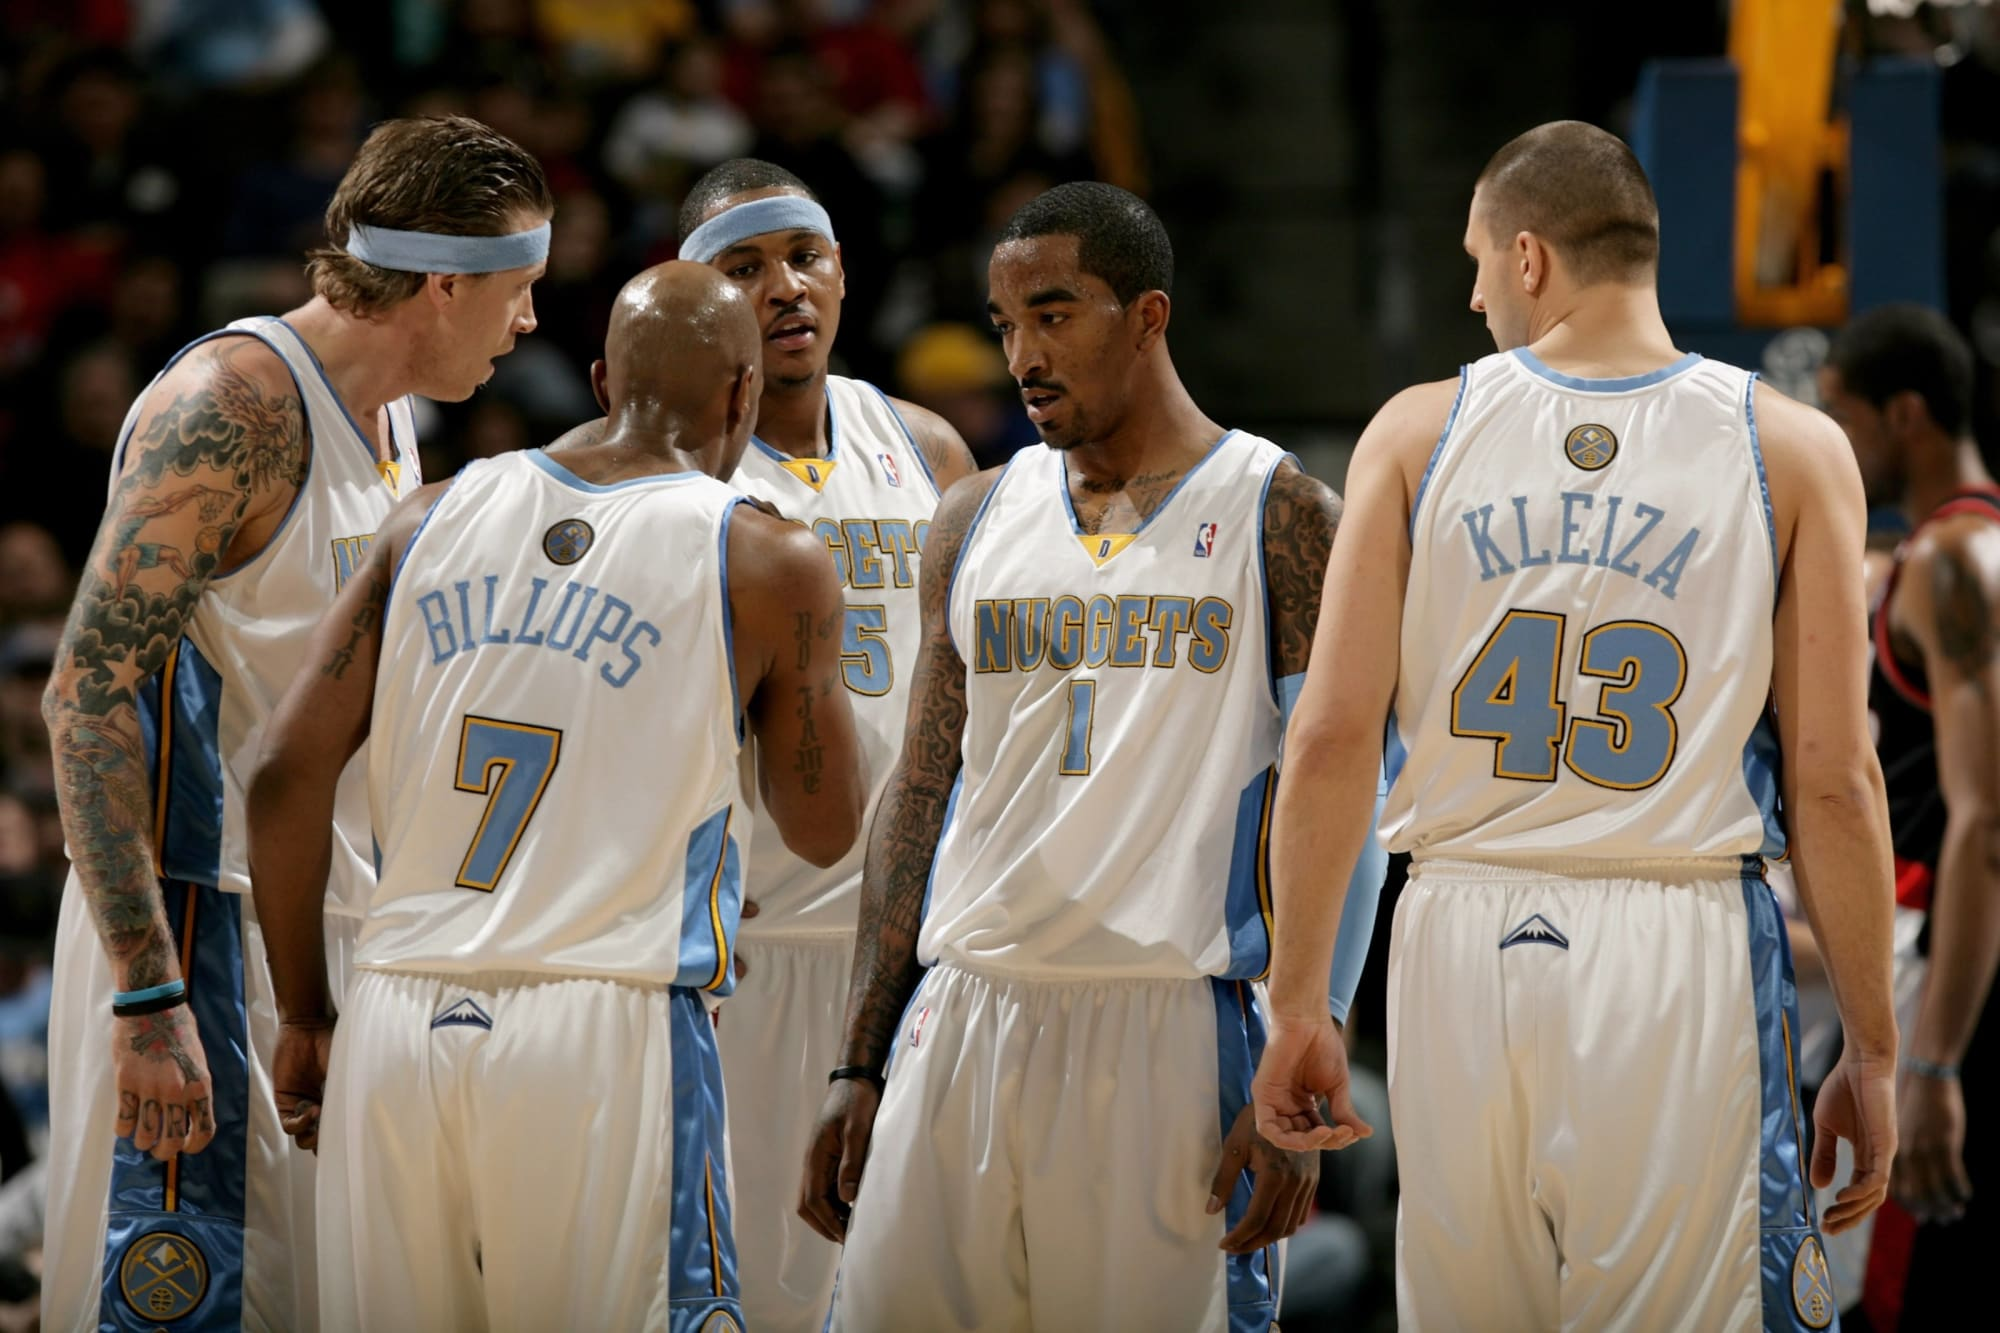 Denver Nuggets: Five former players that would have helped this team